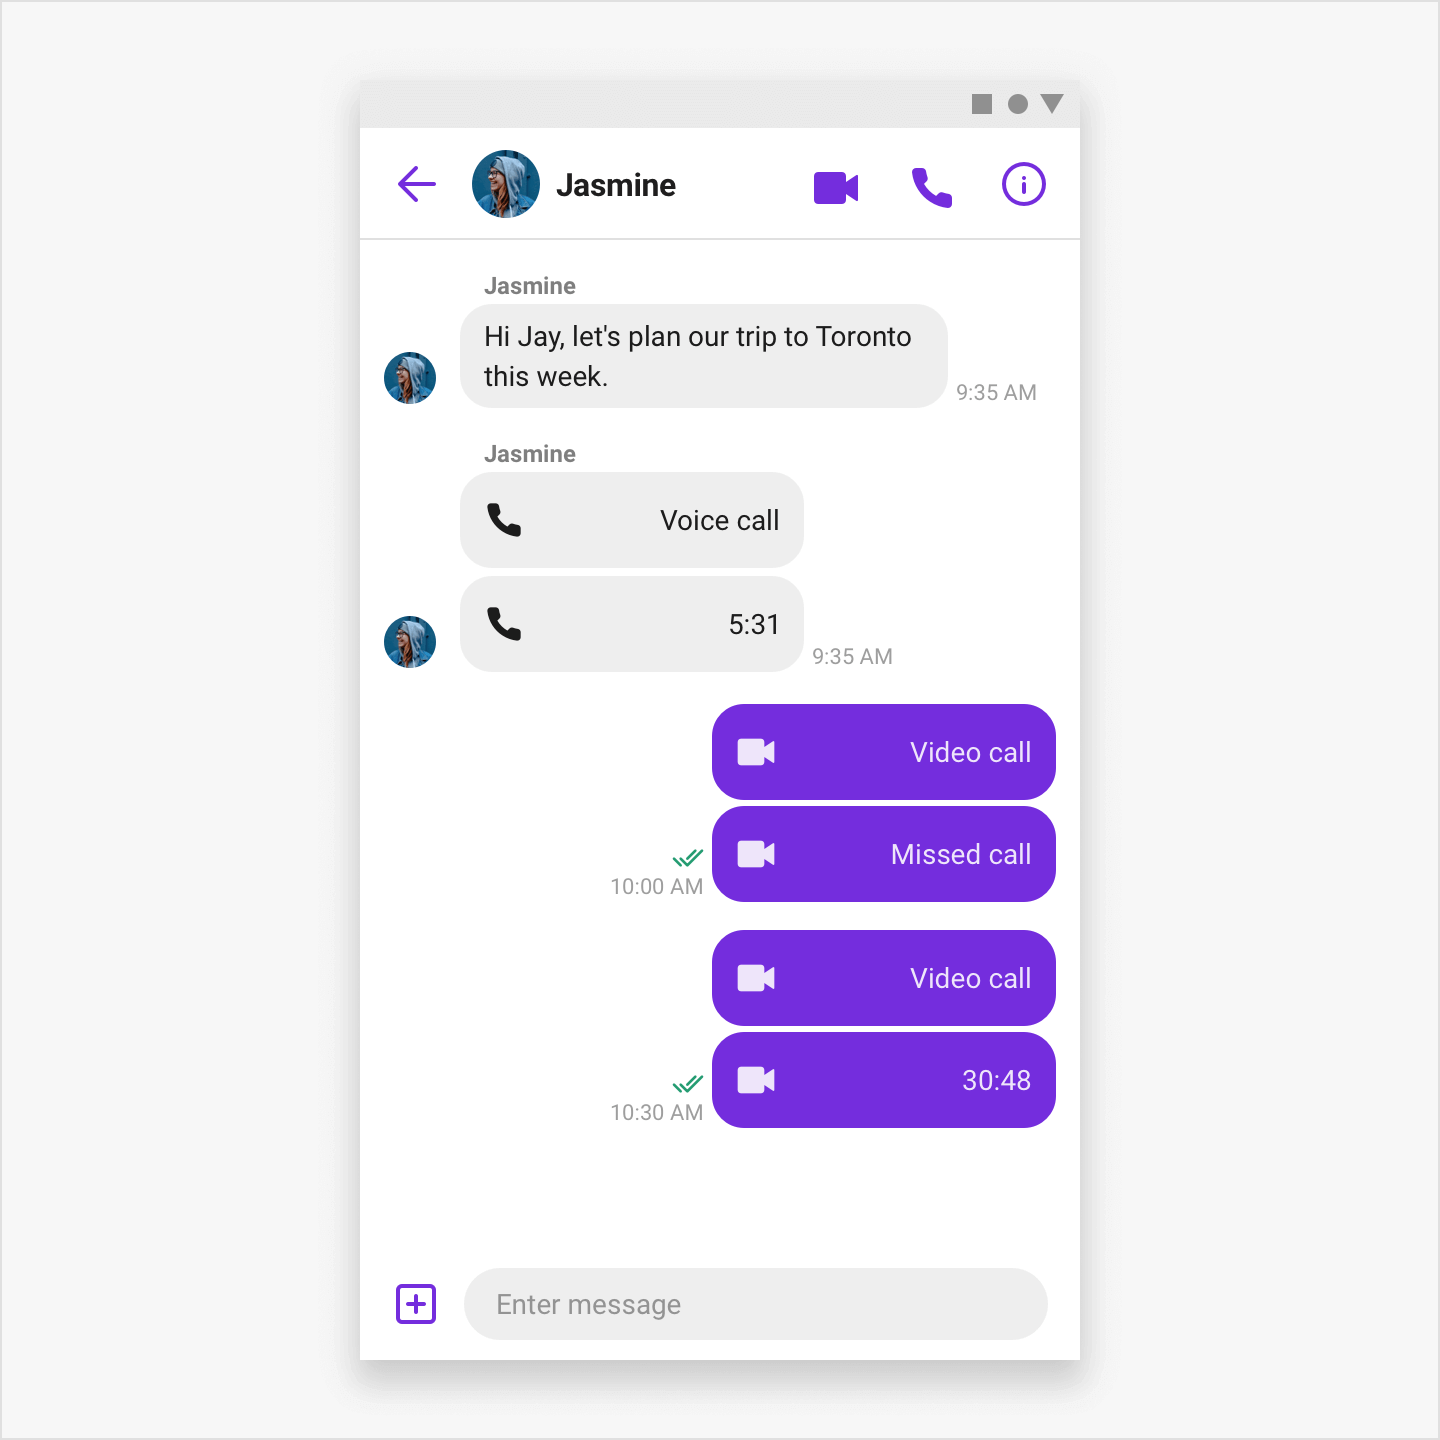 Image|Showing Calls integration to Chat view